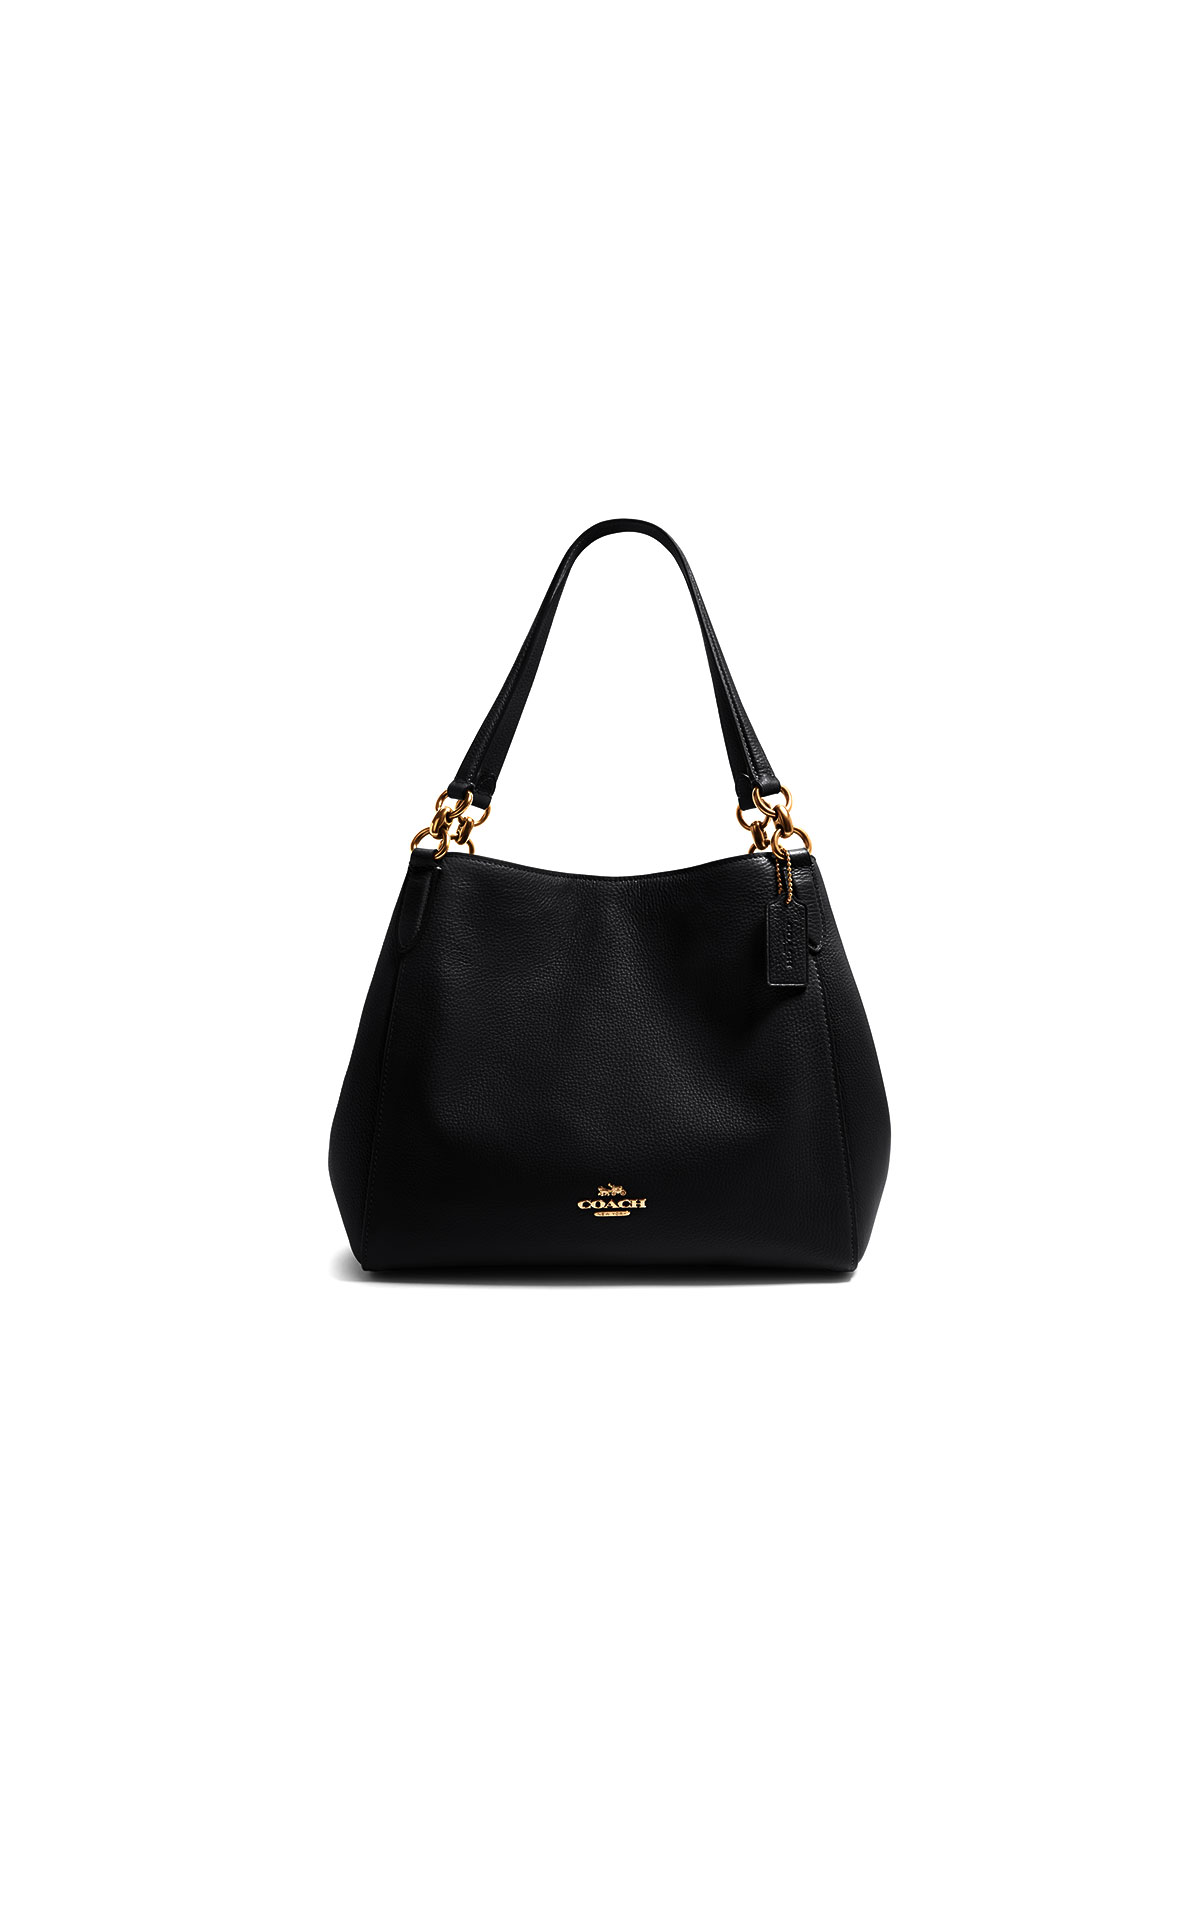 Coach hallie shoulder bag at the Bicester Village Shopping Collection